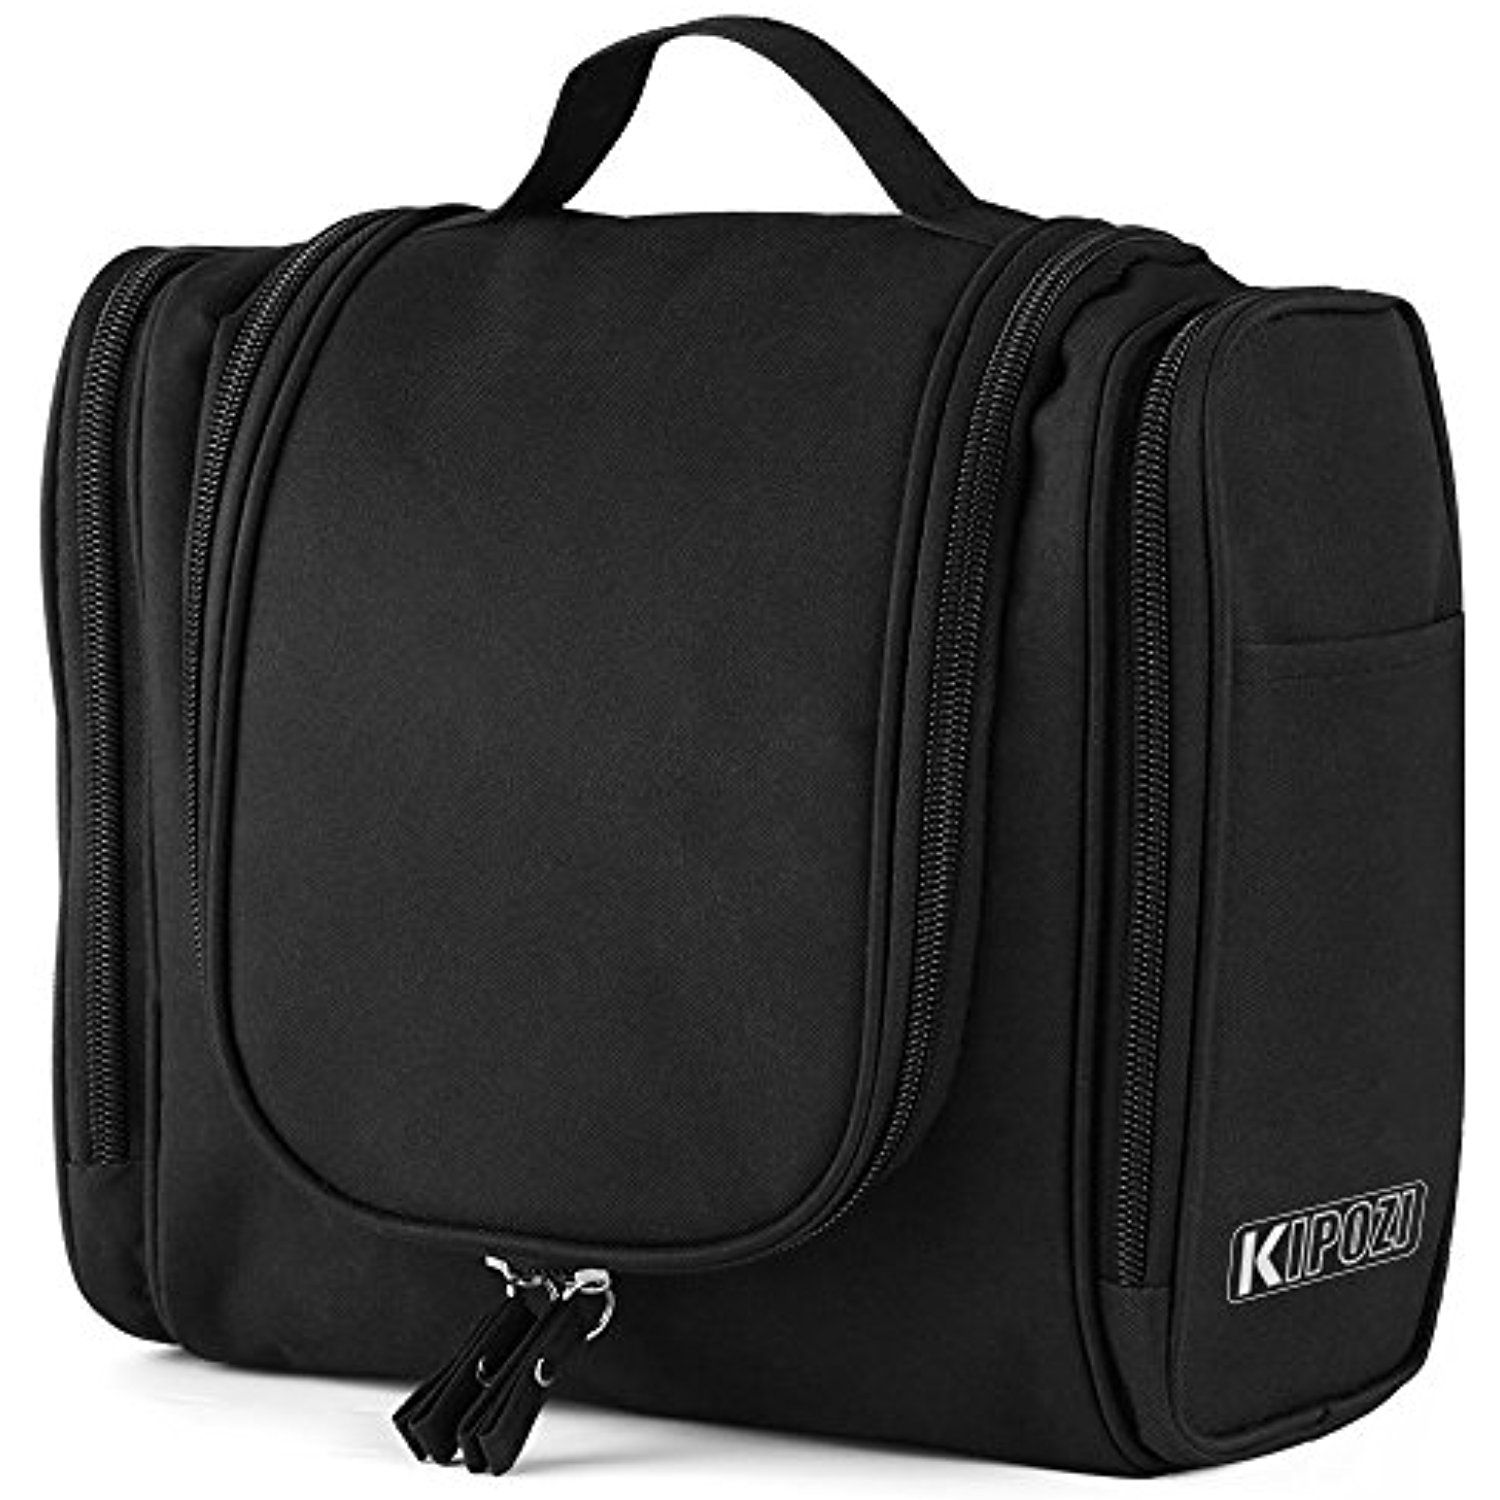 288a784e0ca2 KIPOZI Hanging Toiletry Bag Travel Toiletry Kit for Men Women Toiletries  cosmetics Rugged  BagsCases